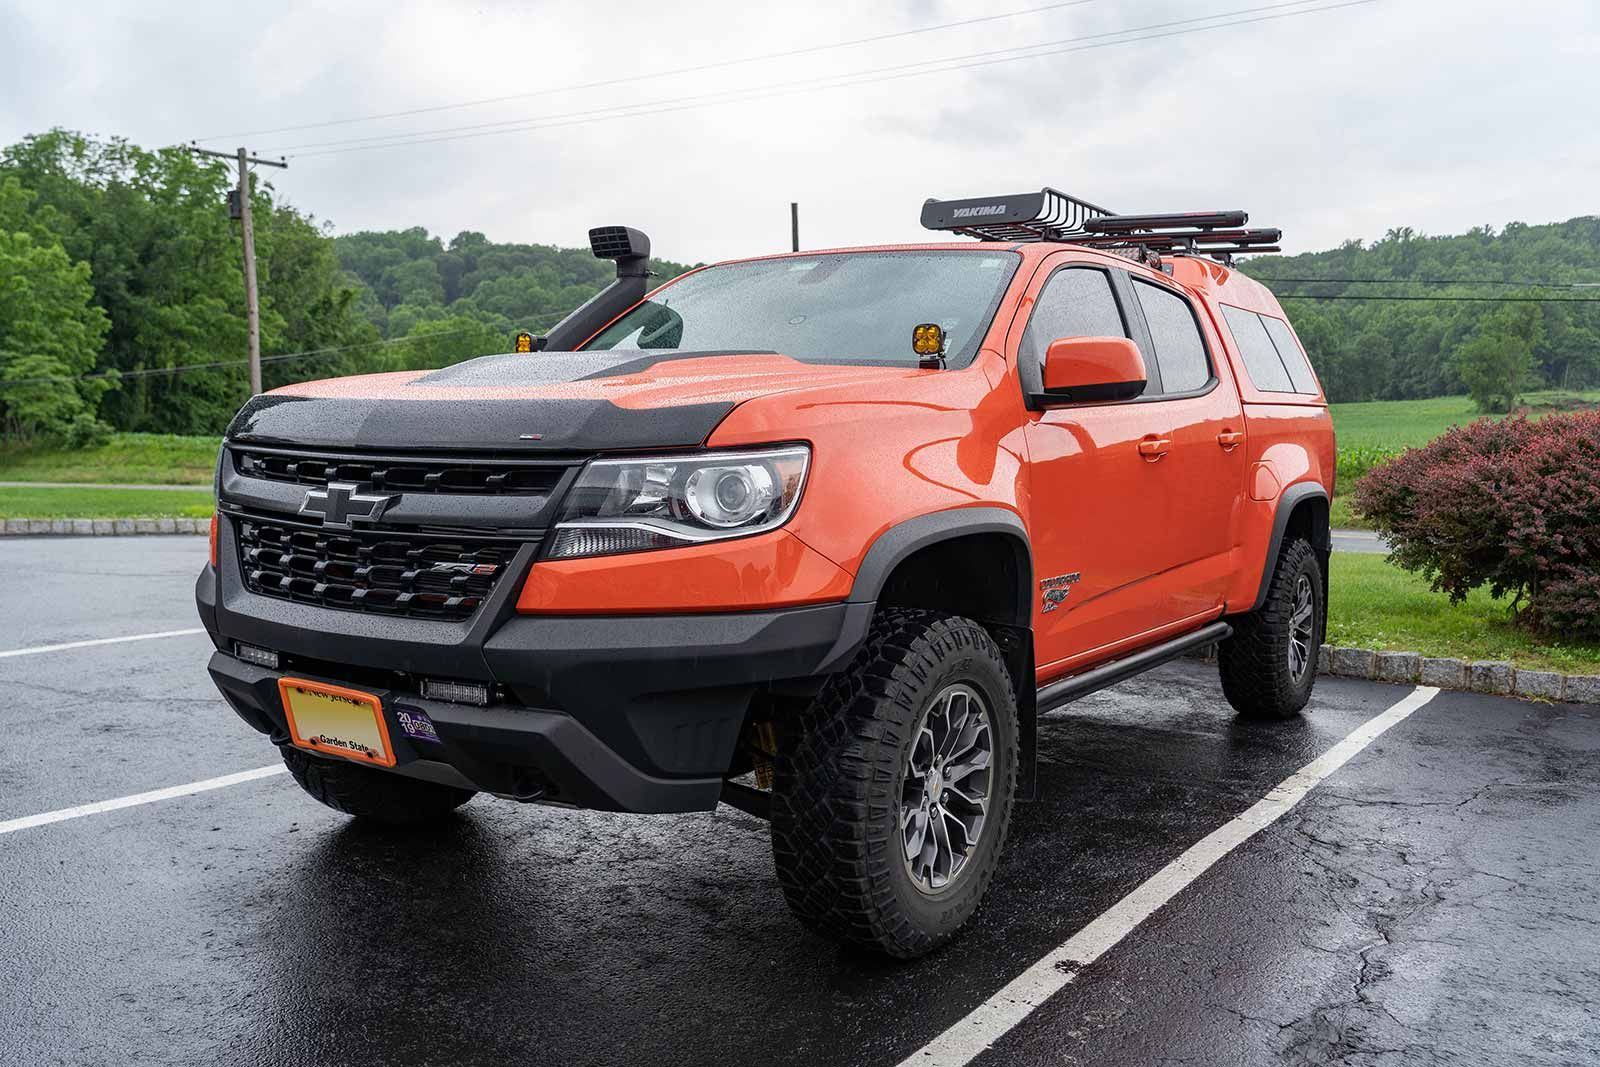 Online Garage 2019 Chevy Colorado Chevy Colorado Chevrolet Colorado Chevy